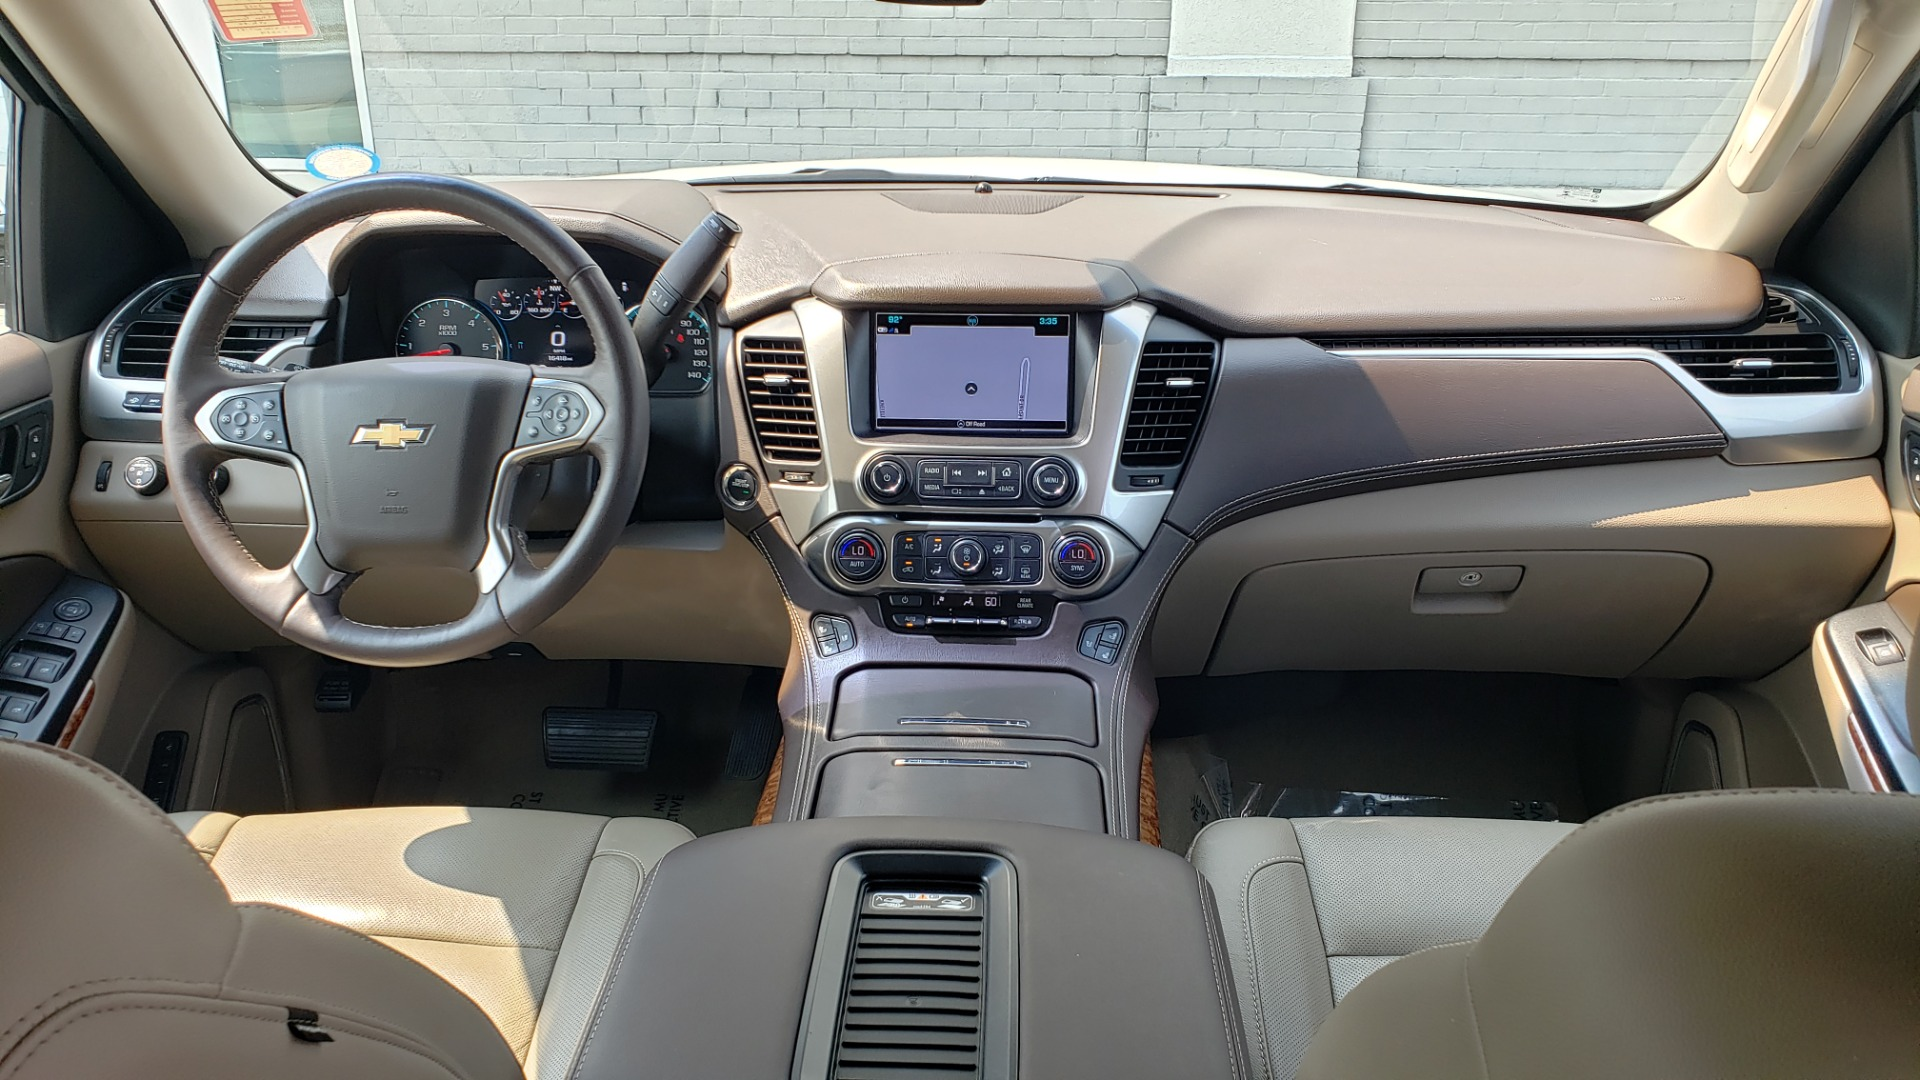 Used 2018 Chevrolet TAHOE PREMIER 4WD / NAV / SUNROOF / BOSE / 3-ROW / HUD / REARVIEW for sale $63,995 at Formula Imports in Charlotte NC 28227 81